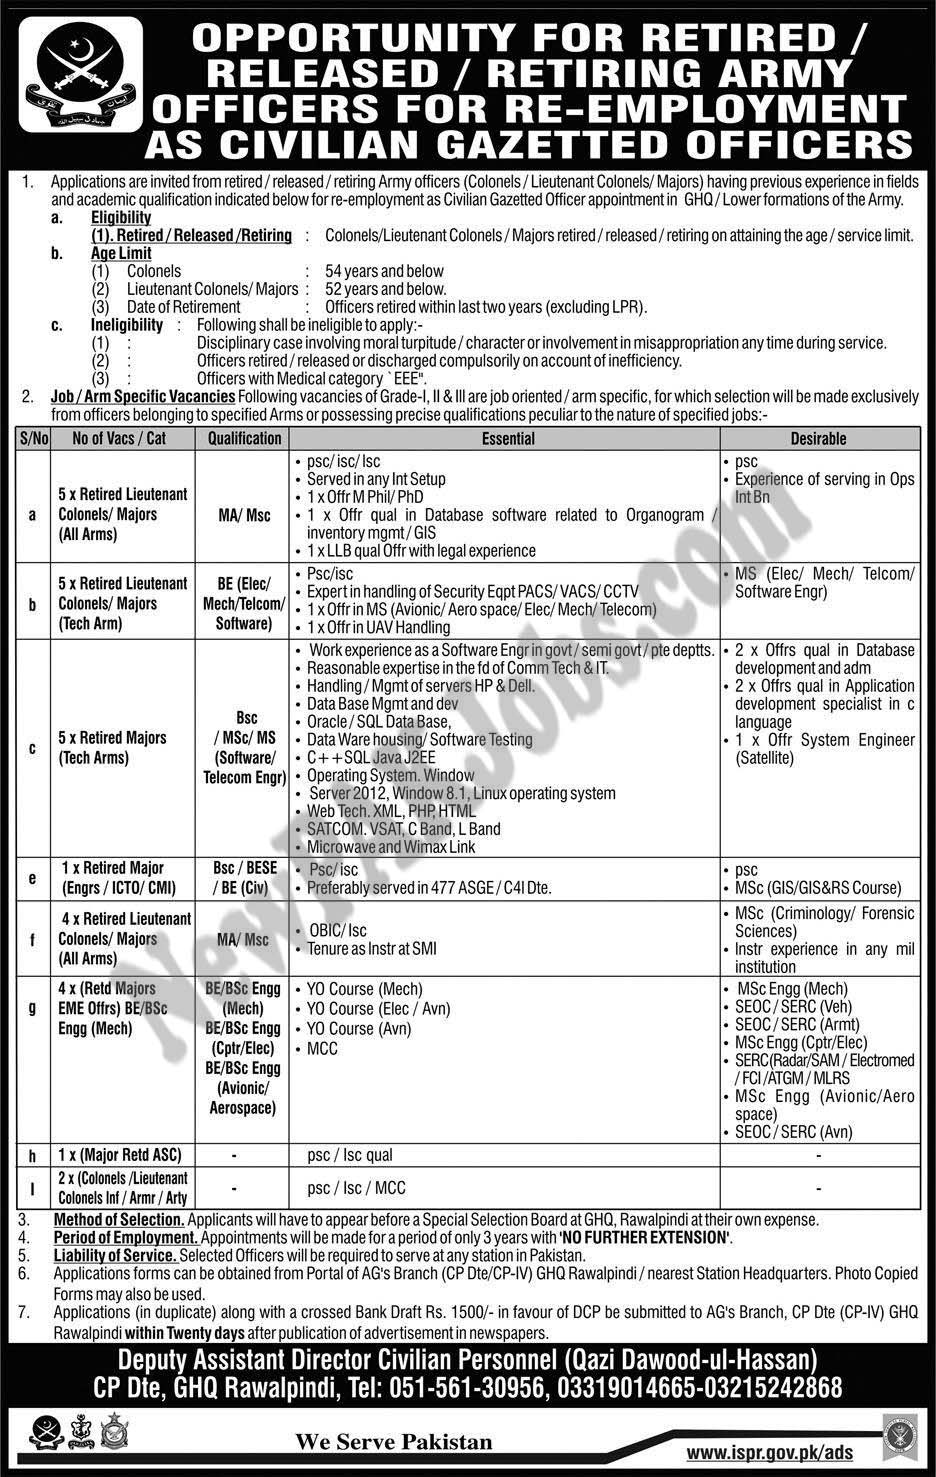 Jobs-in-Pakistan-Army-as-Civilian-Gazetted-Officer